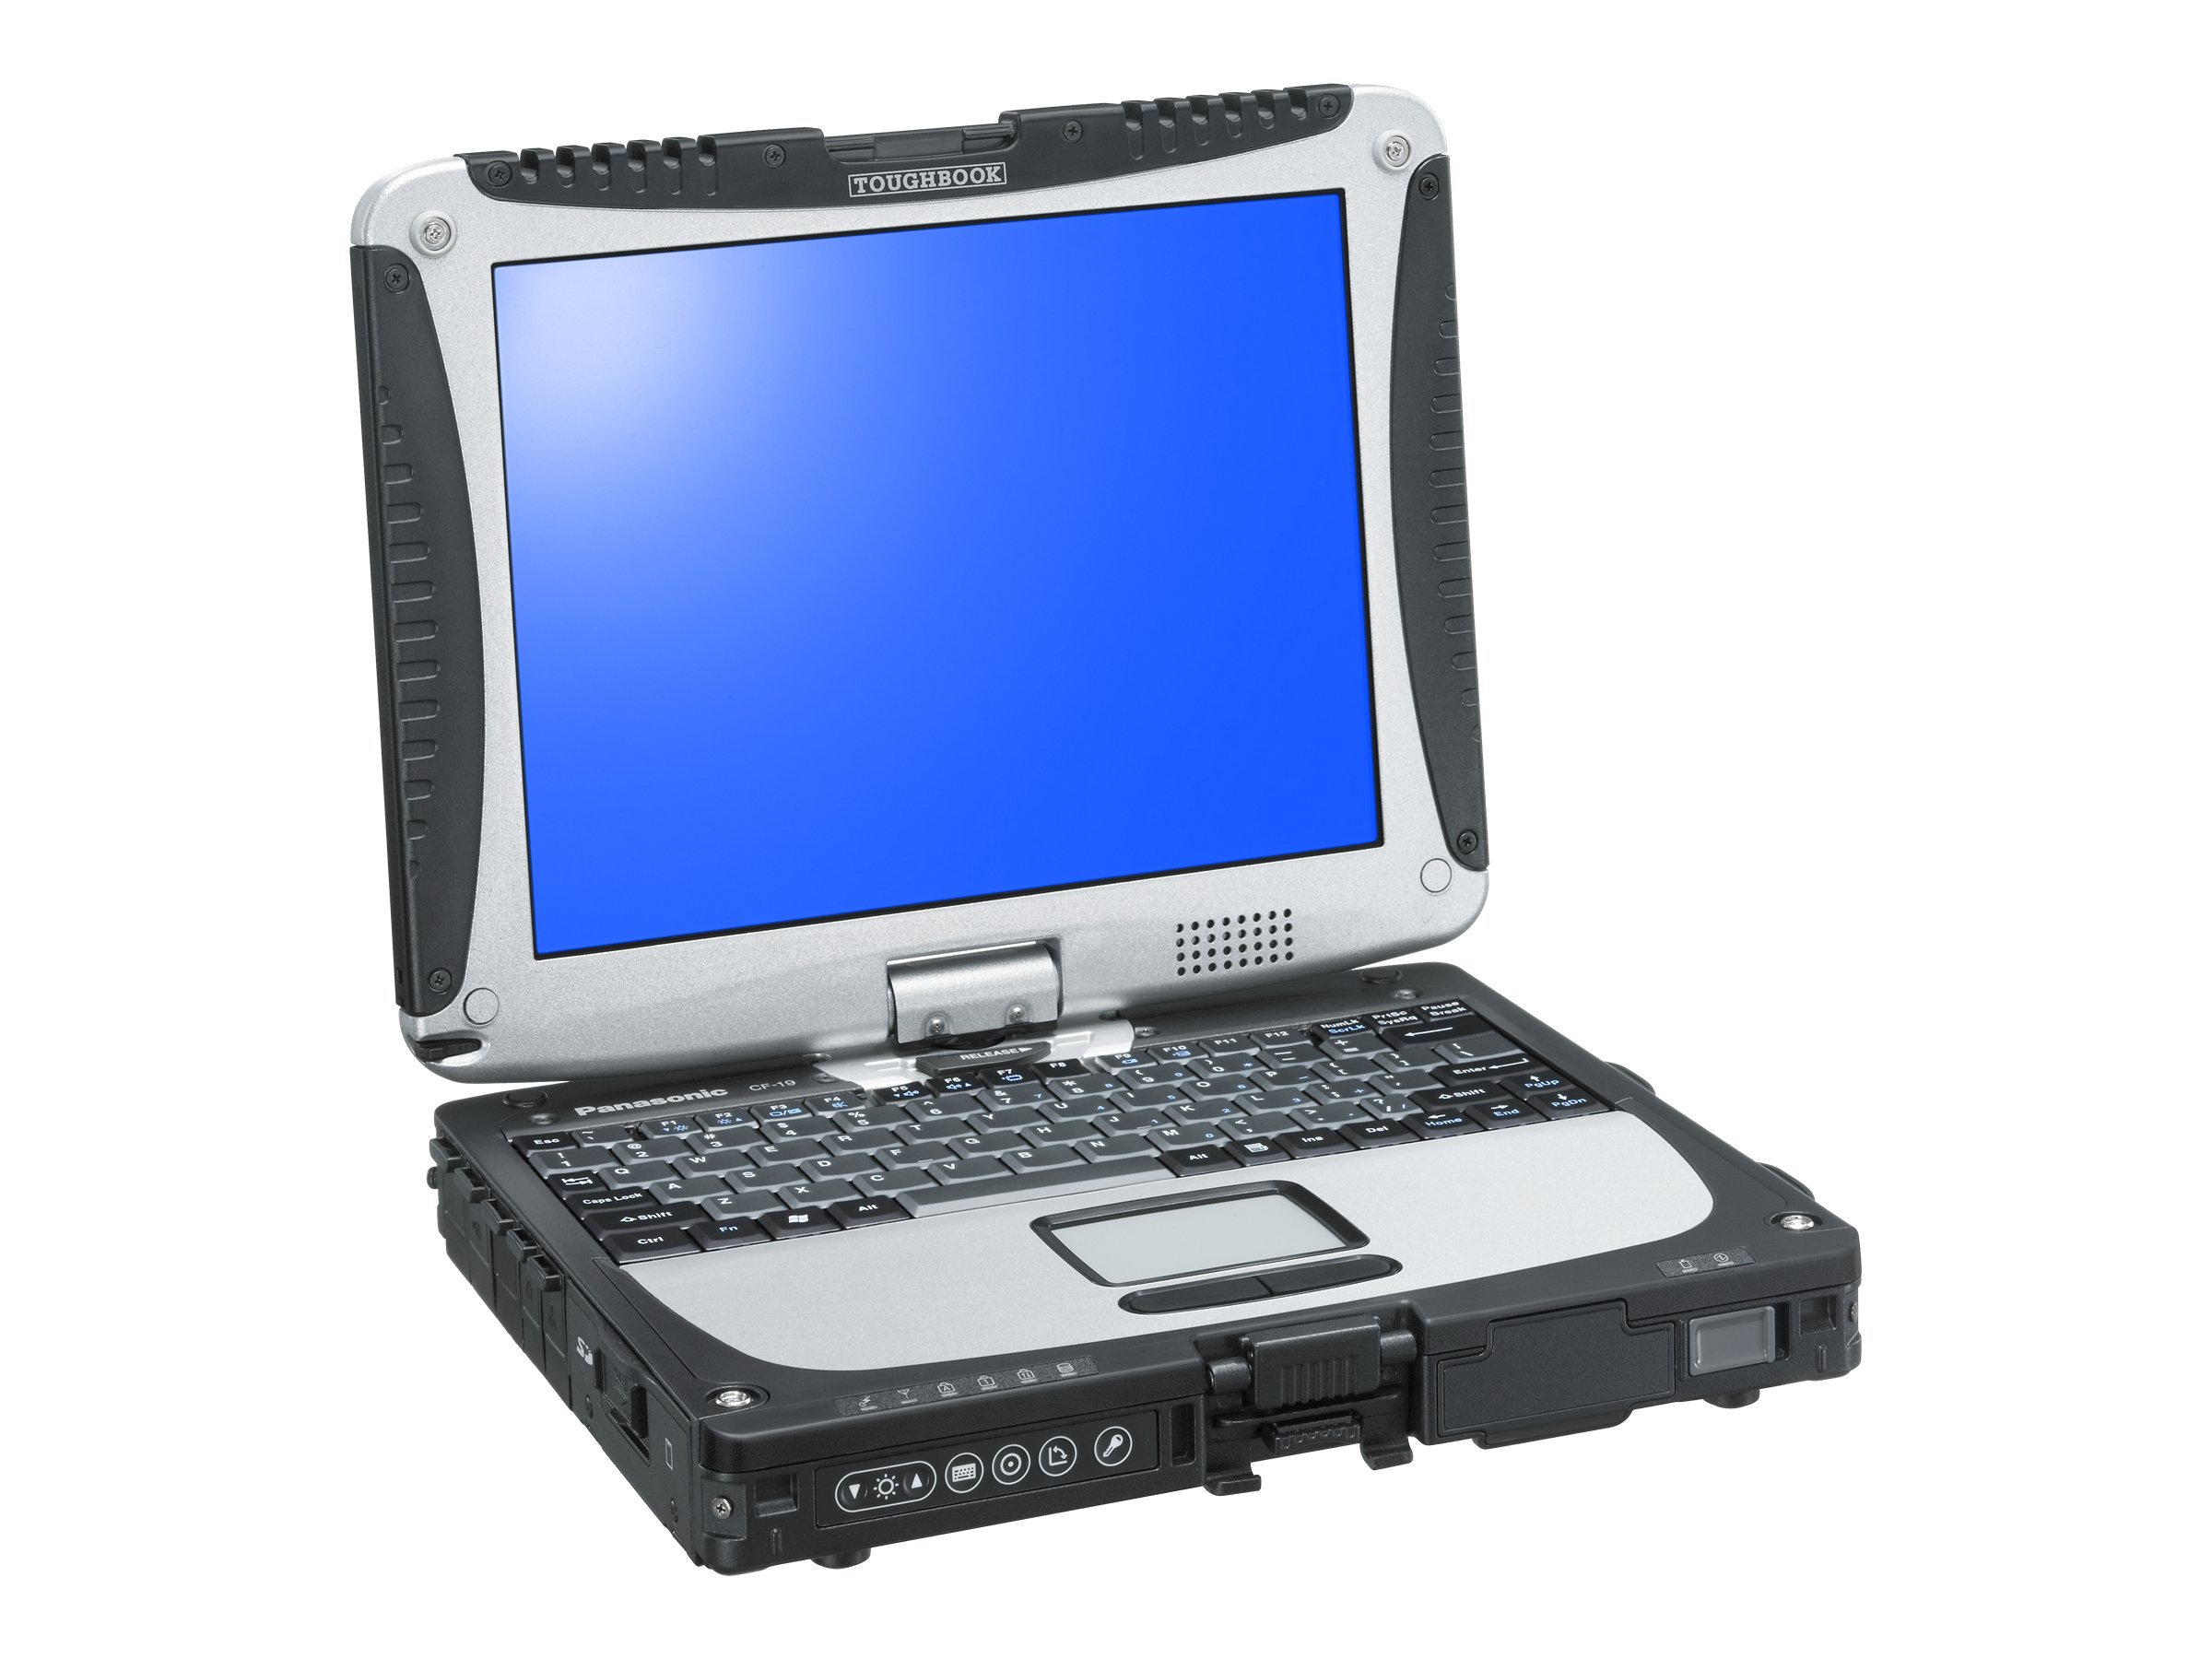 Panasonic Toughbook 19 Core i5-3610ME 2.7GHz 10.1 MT